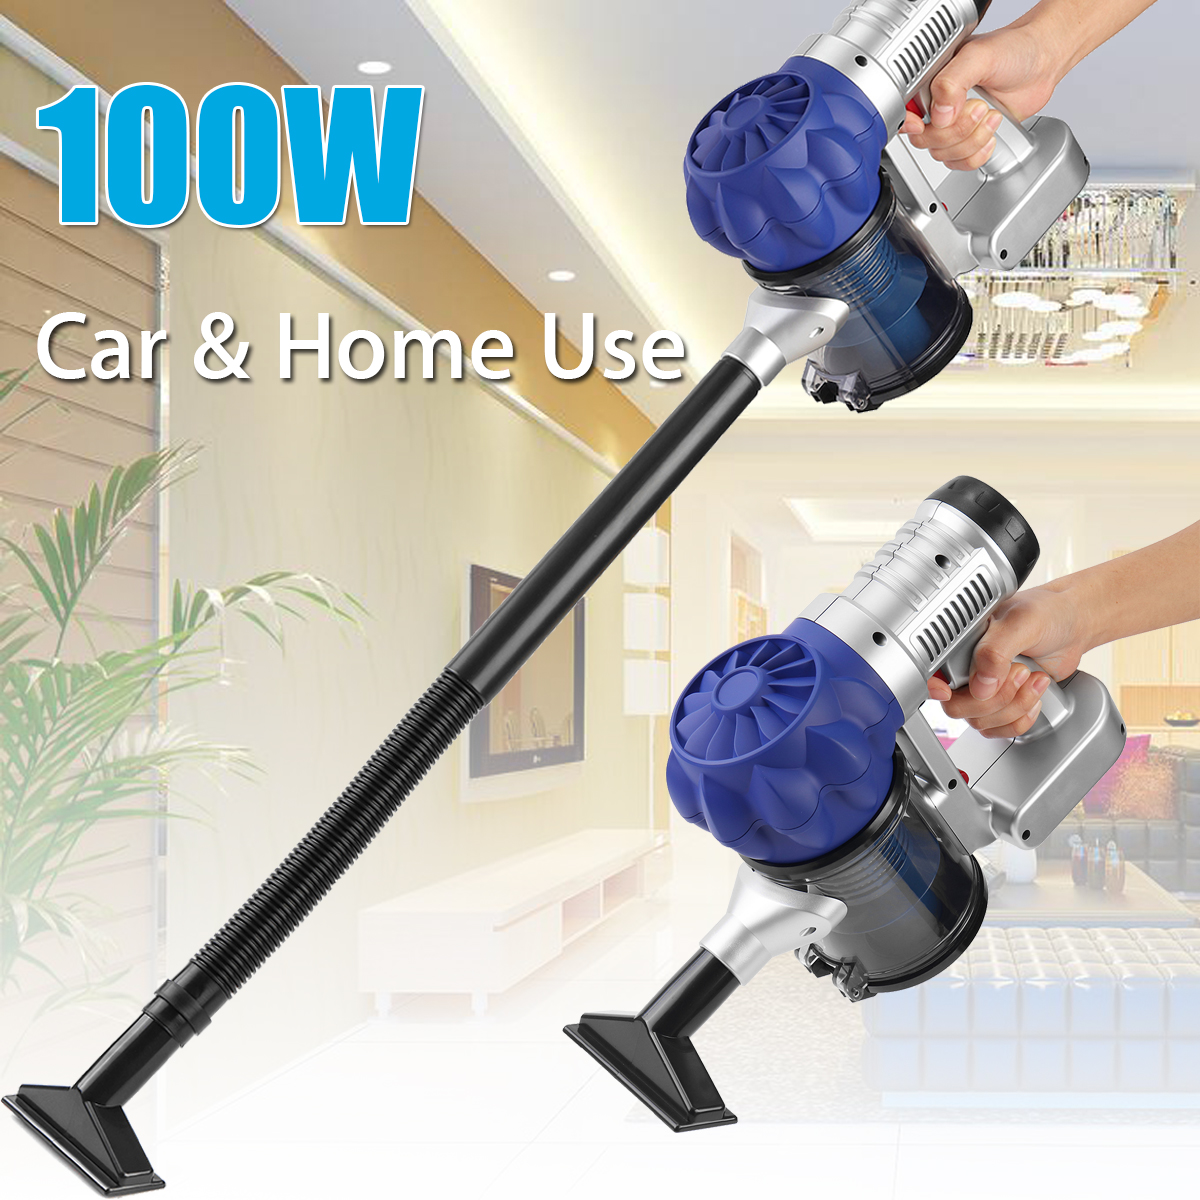 2 In 1 Cordless Stick Vacuum Cleaner Bagless For Car Home Use 3500Pa Dry Wet Use